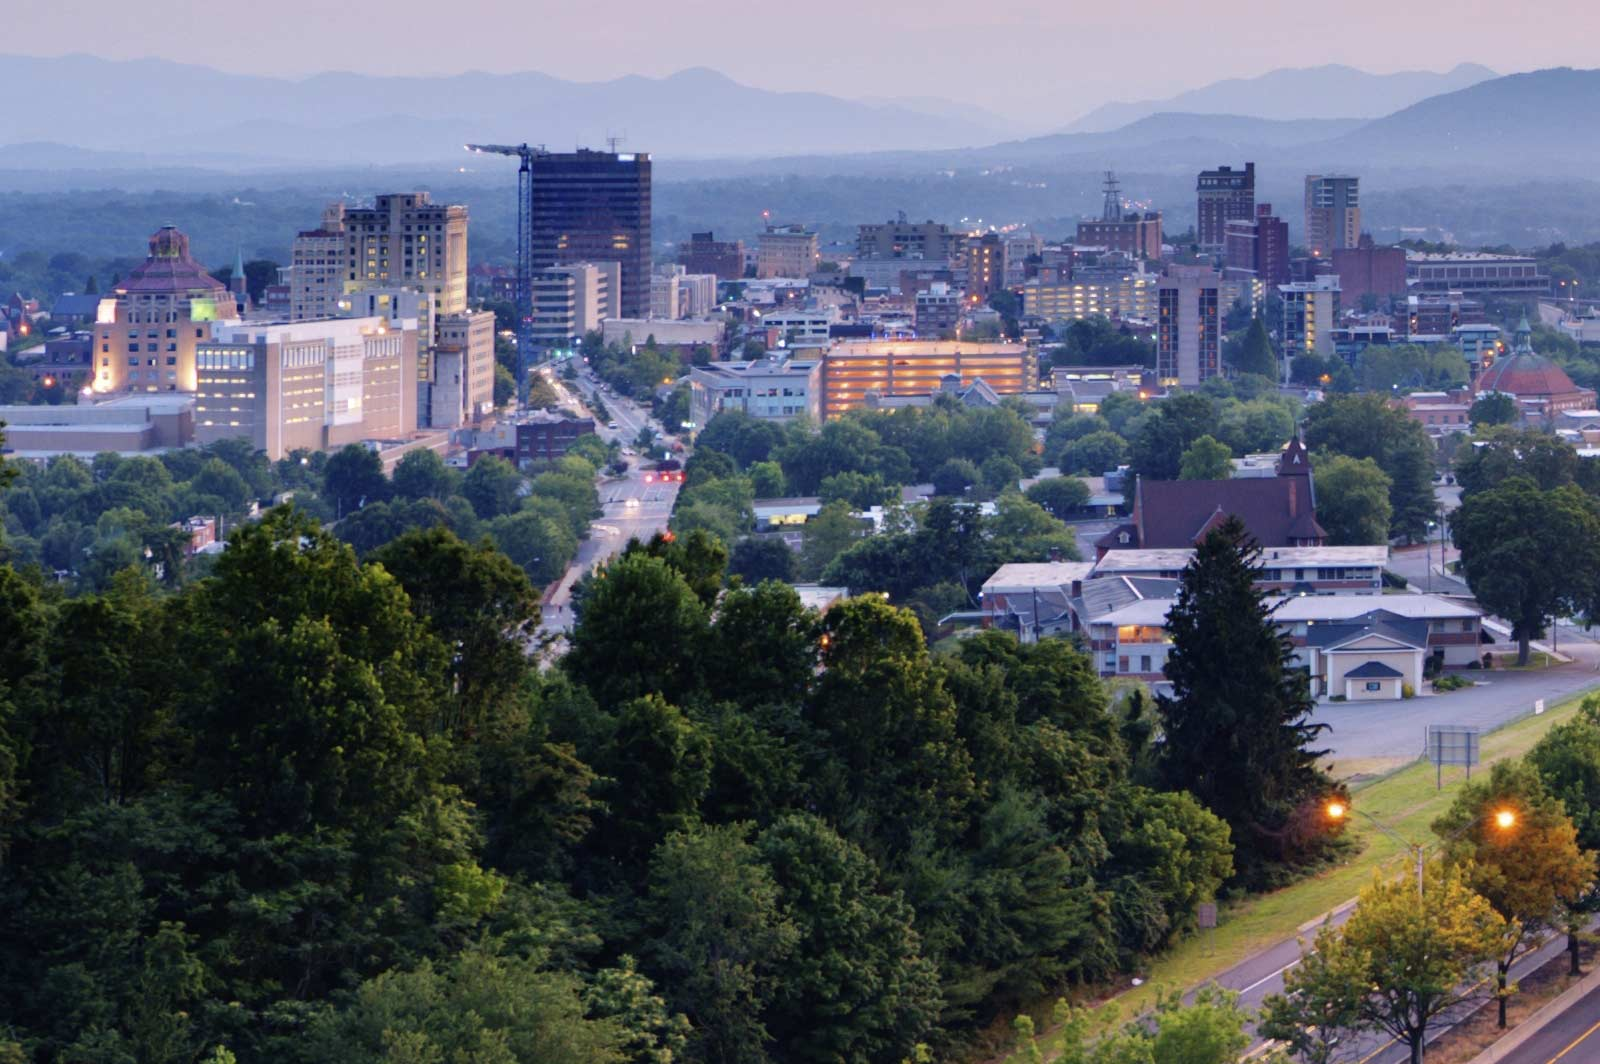 Houses for Rent in Asheville - Tons of Rentals